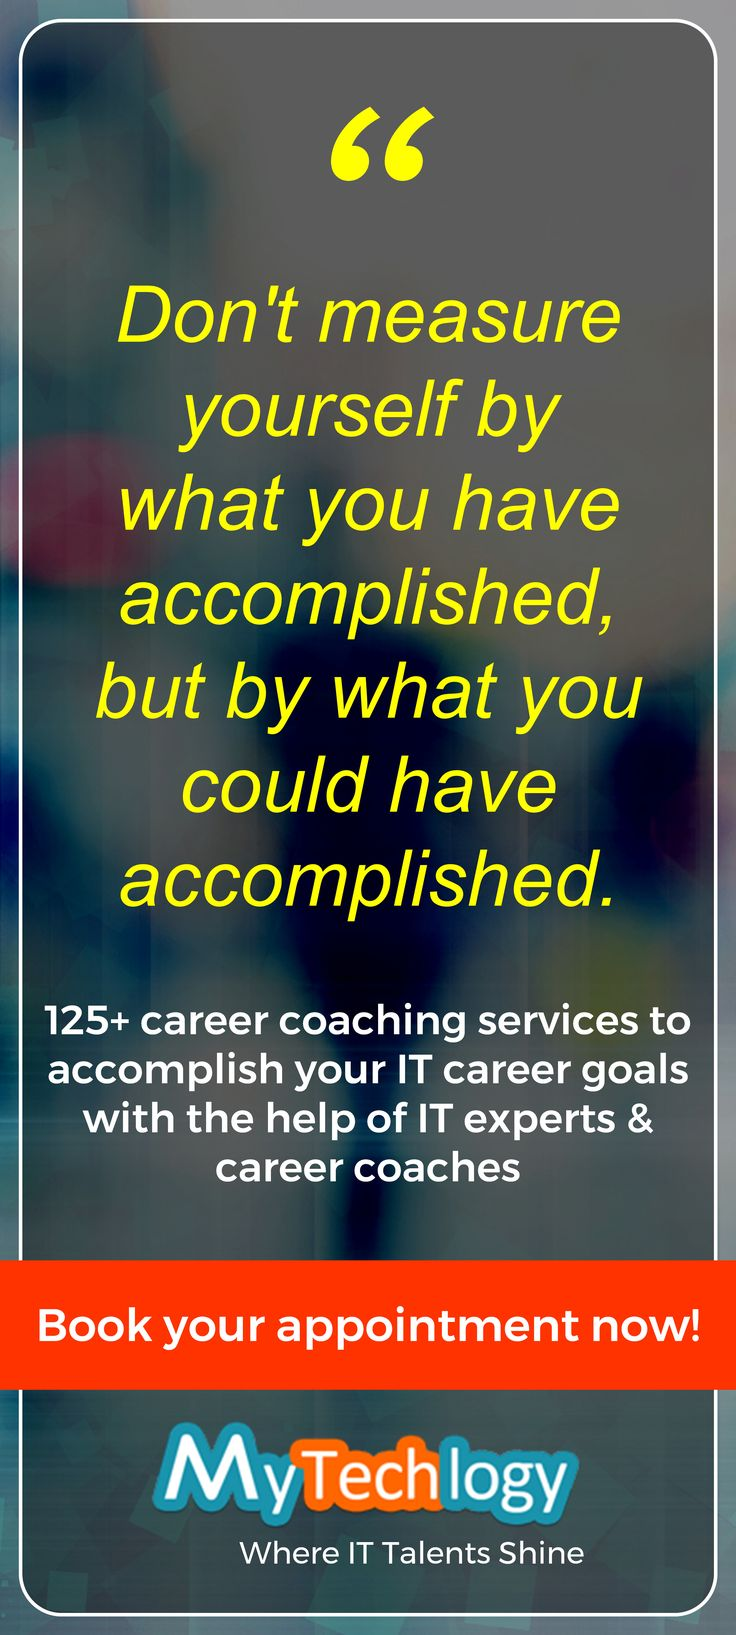 125+ IT Career Coaching Services, 50+ IT experts and career coaches ready to help you in your IT career progression. To book your appointment visit: https://www.mytechlogy.com/IT-career-development-services/